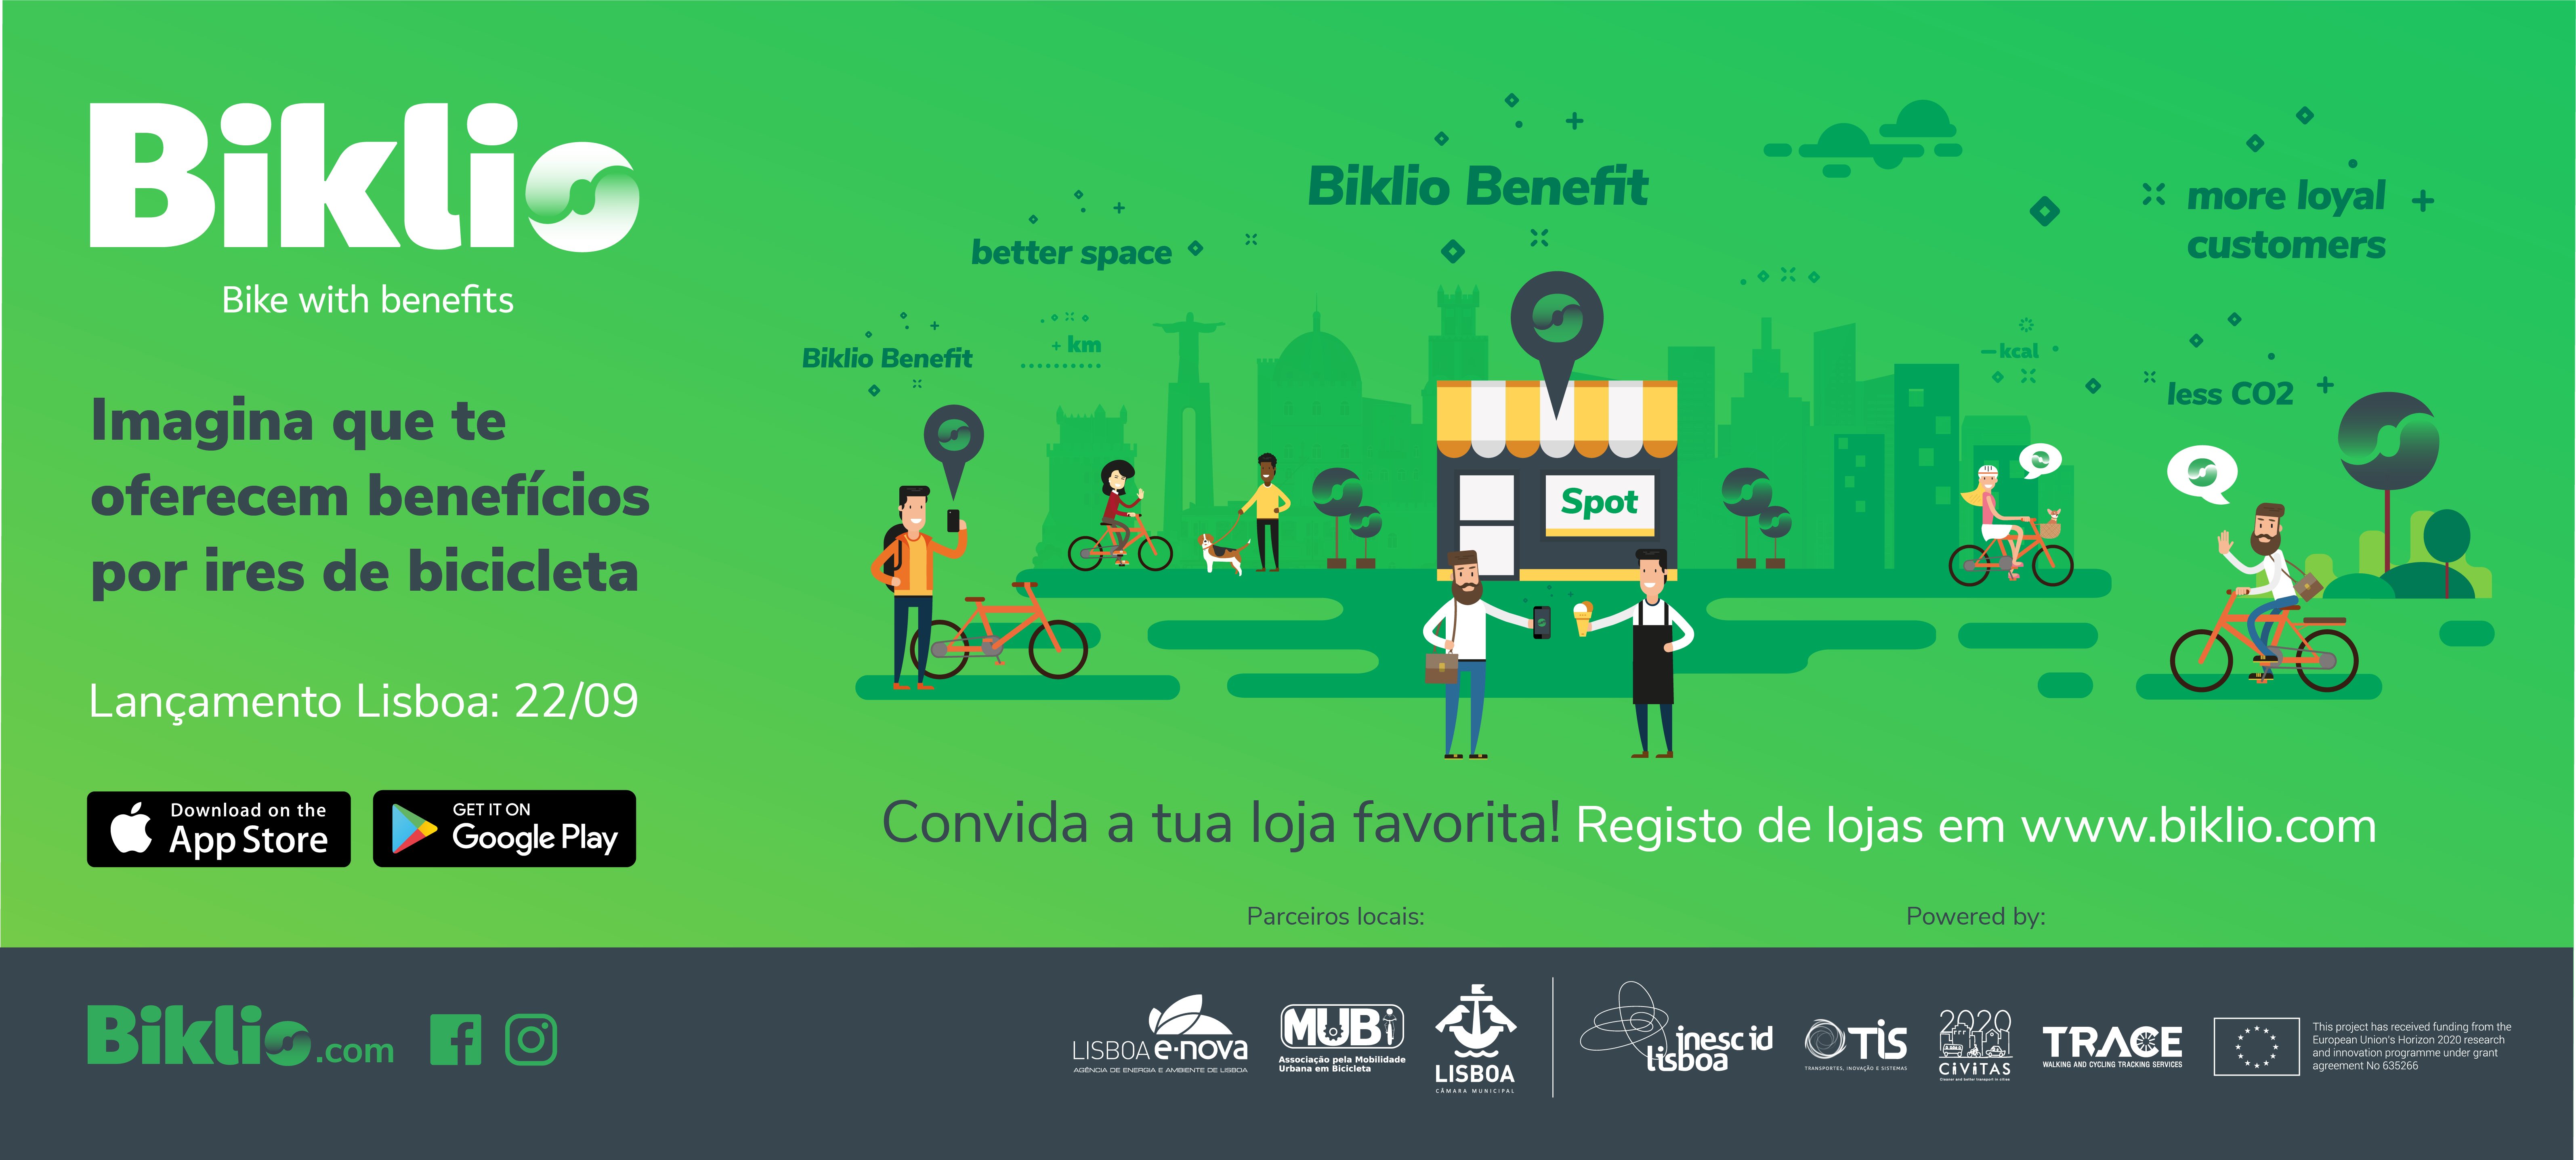 Biklio Bike To Shop Campaign Lisboa 1